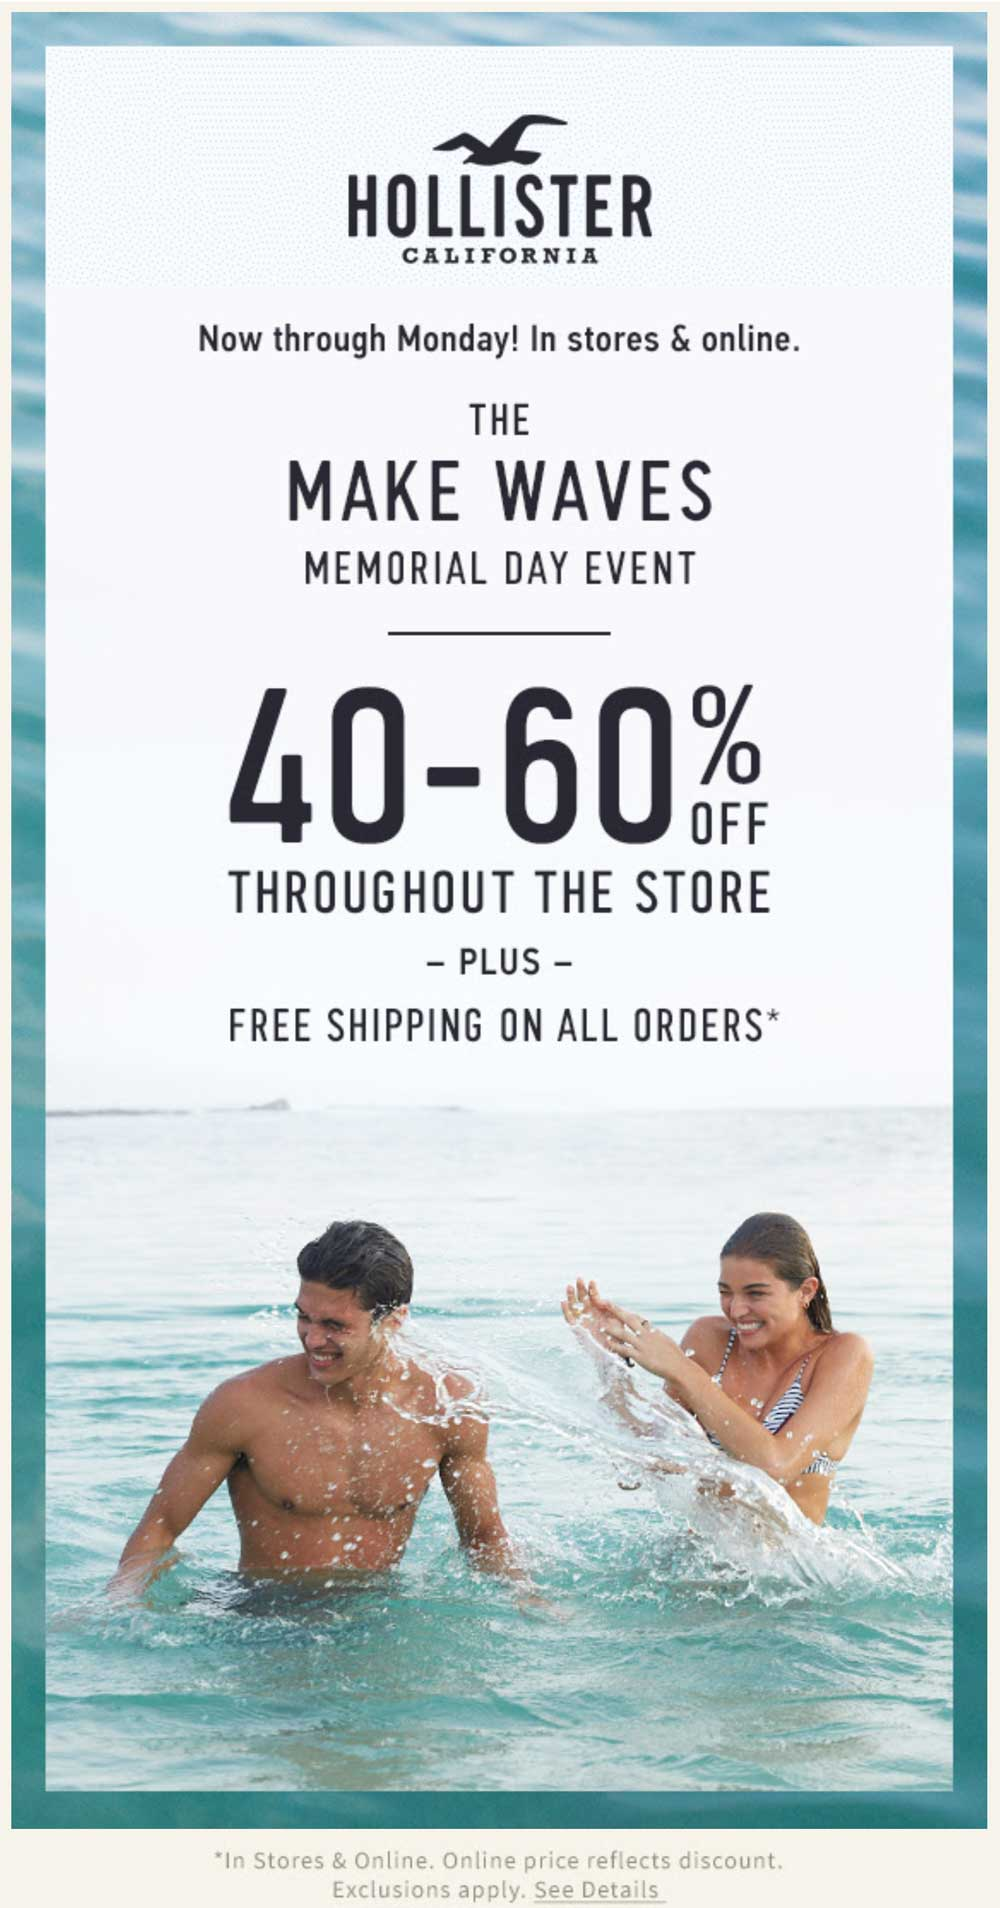 Hollister Coupon March 2019 40-60% off everything at Hollister, ditto online